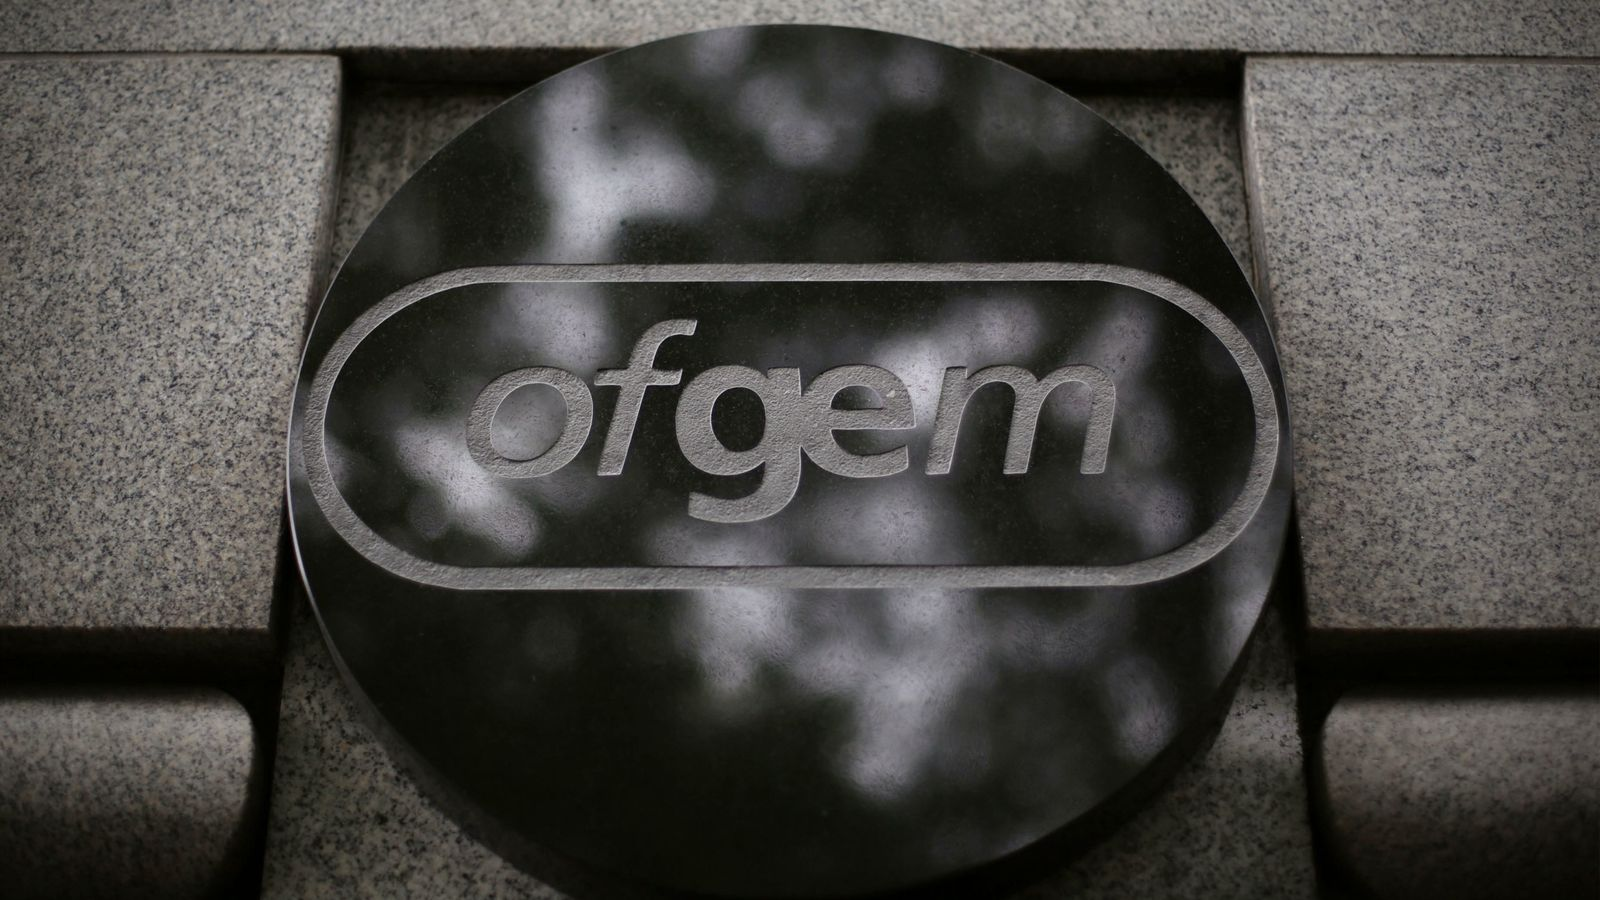 Ofgem Boss Implies Millions of People could be affected by Energy Companies Going Bust